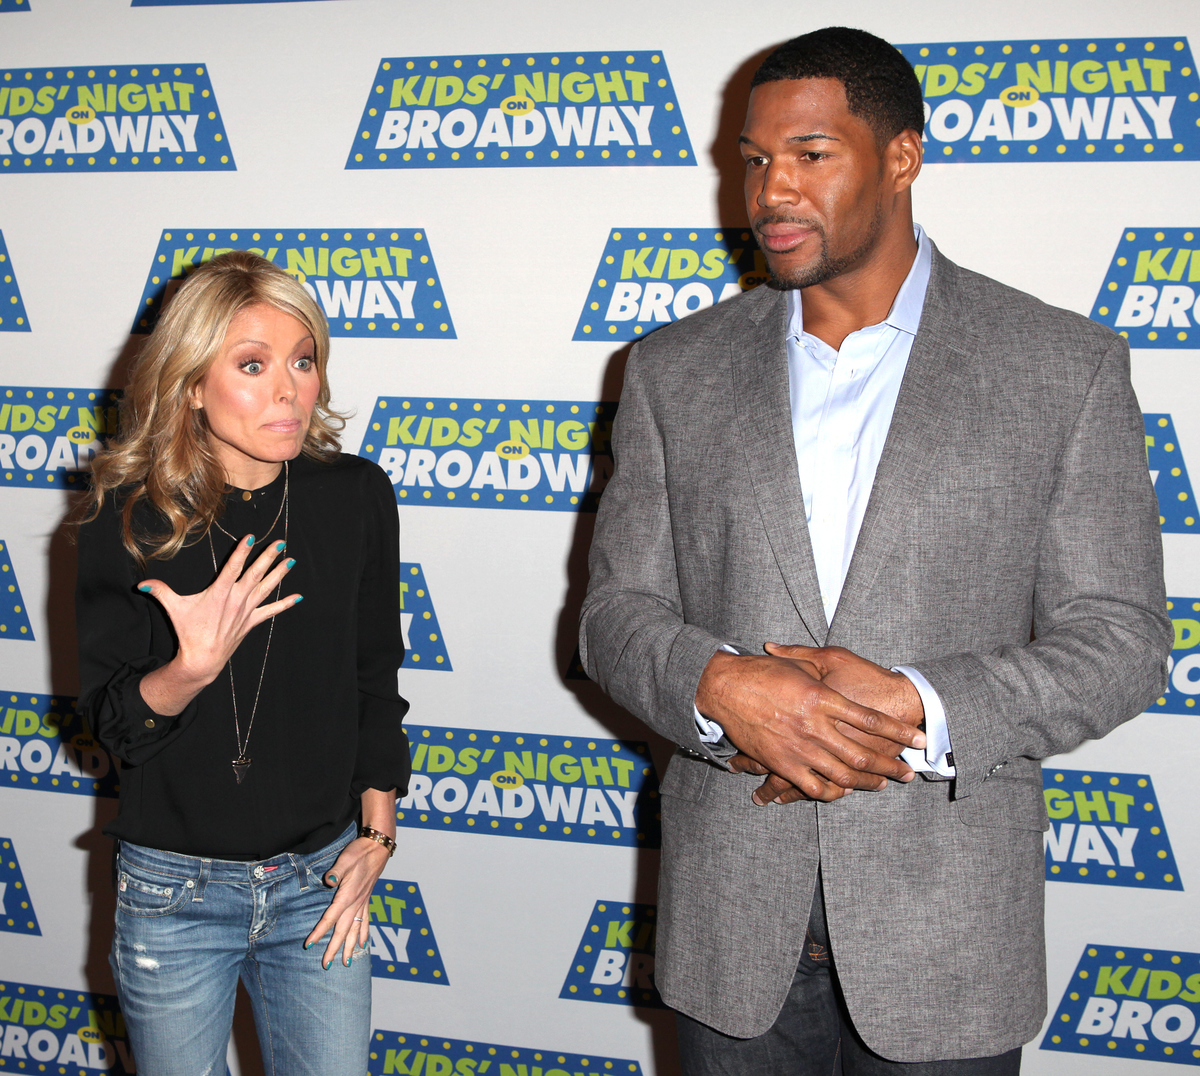 Kelly Ripa & Michael Strahan attending the Kids' Night on Broadway ticket launch with National Ambassadors Kelly Ripa & Michael Strahan at the August Wilson Theatre in New York City on 1/9/2013.